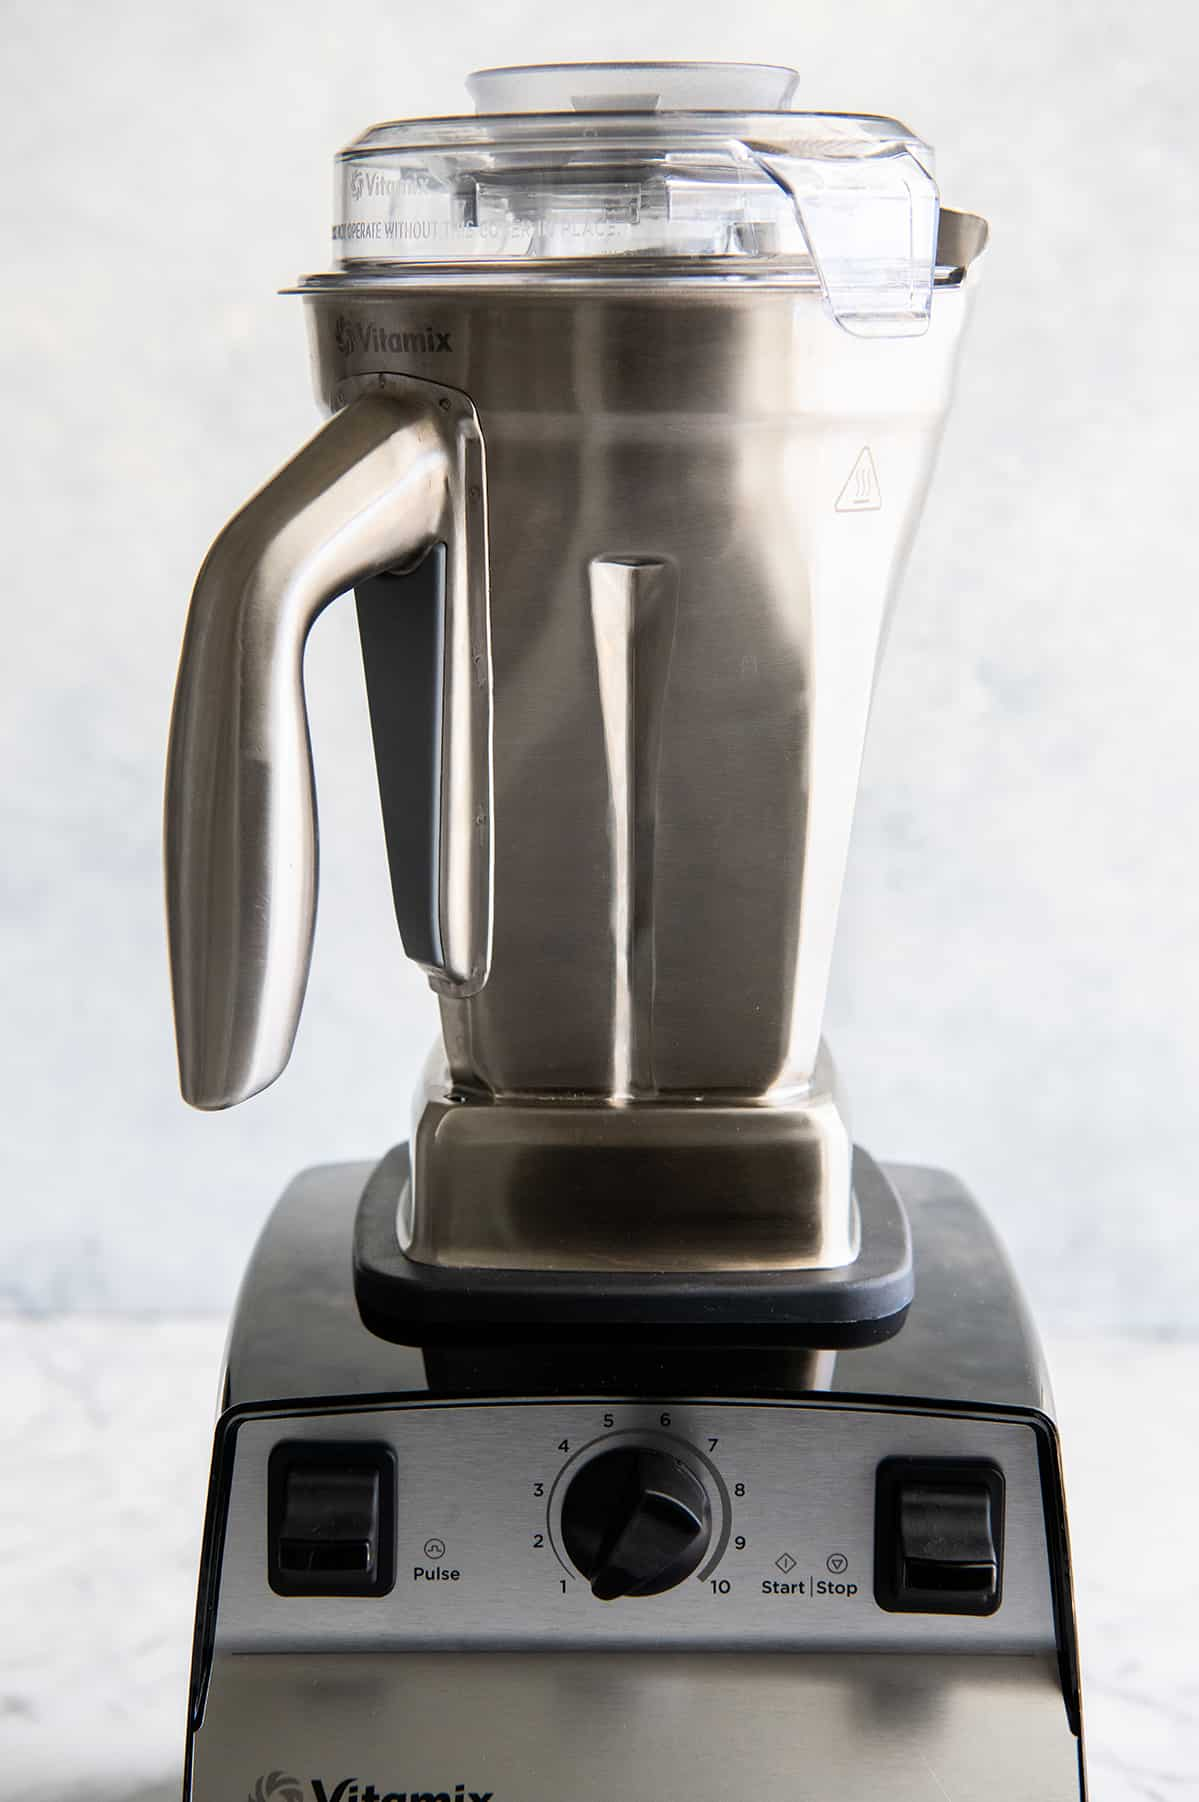 front view of the Vitamix stainless steel container on the Vitamix 5300 blender